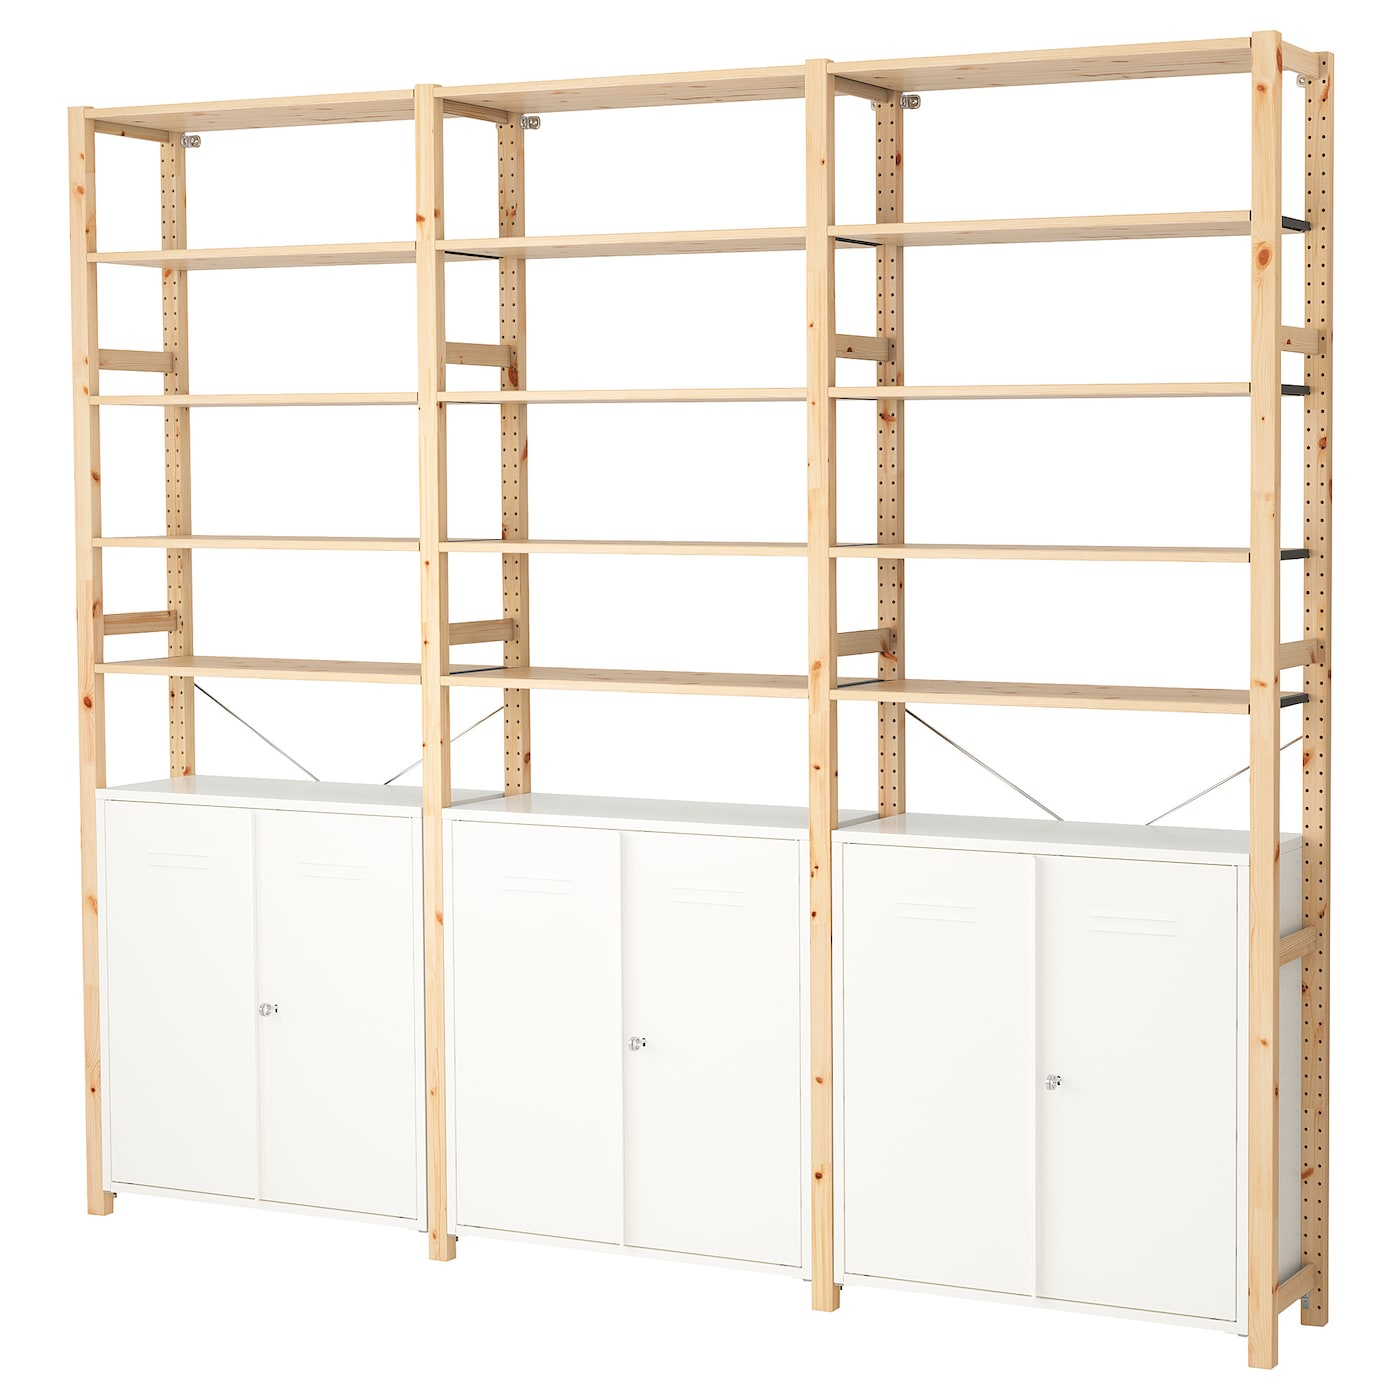 ivar 3 sections cabinet shelves pine white 259 x 30 x 226 cm ikea. Black Bedroom Furniture Sets. Home Design Ideas